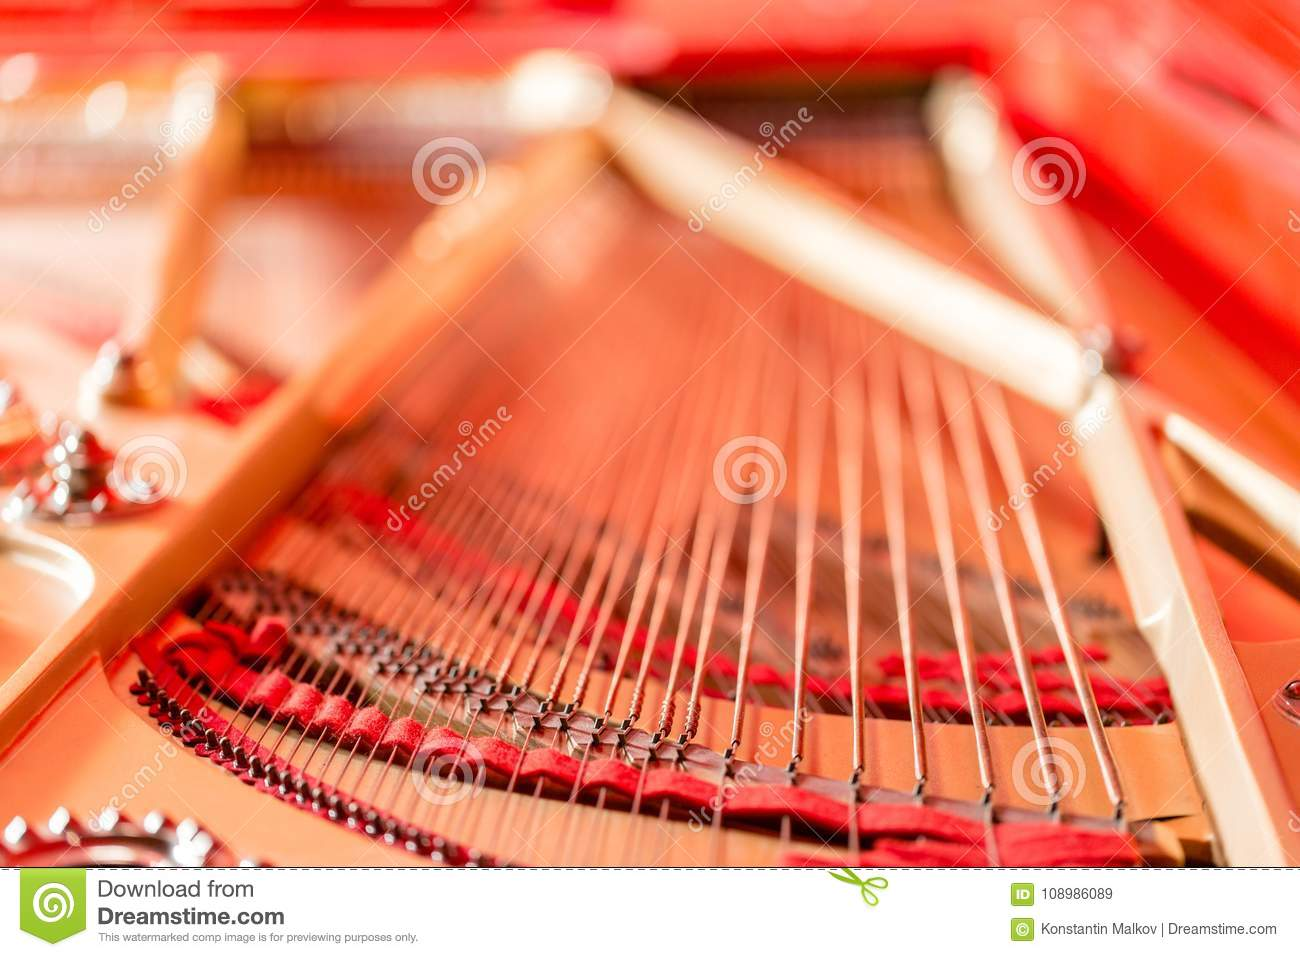 Strings close-up. Vintage red classical grand piano. Musical instrument abstract.